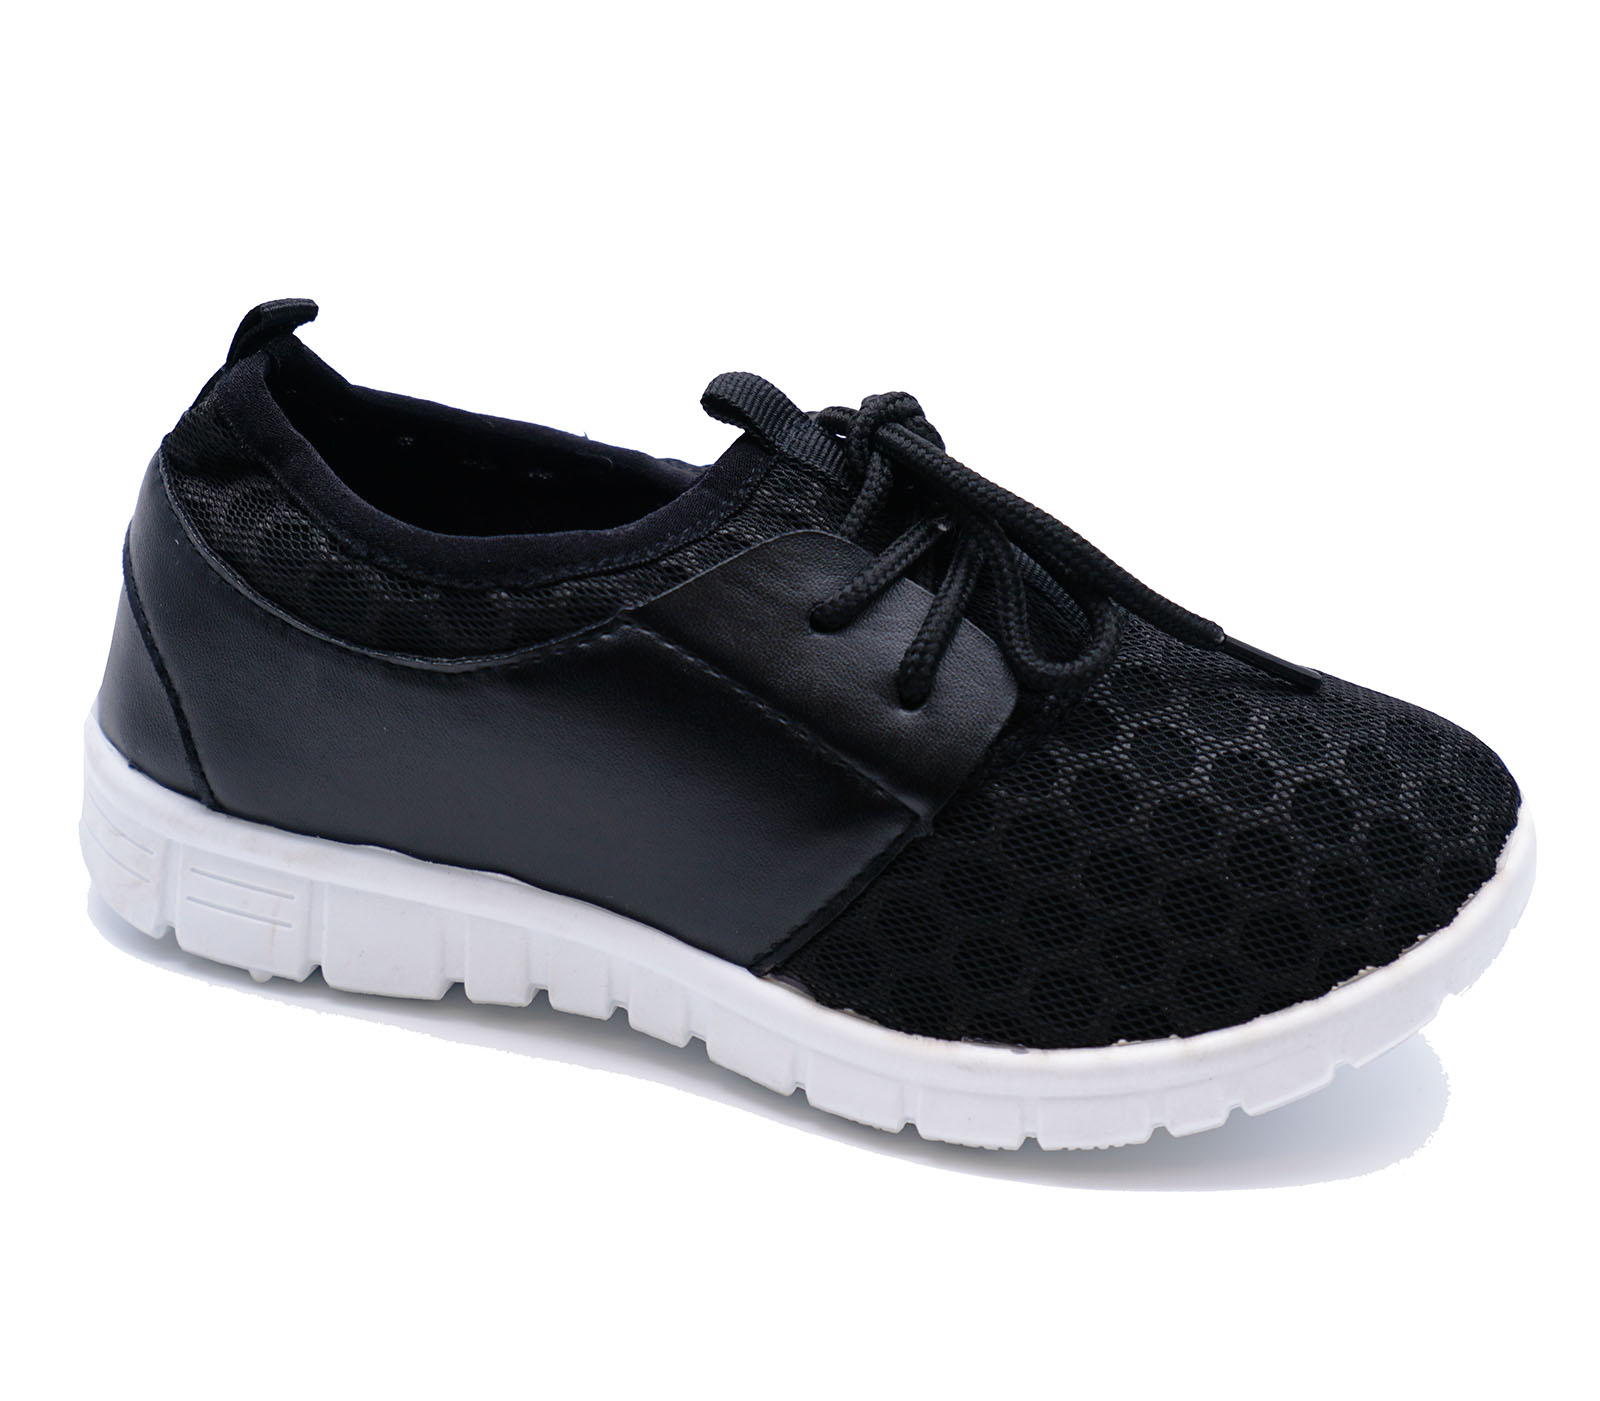 c0ee36e2cd5 Sentinel BOYS GIRLS KIDS CHILDRENS BLACK SCHOOL TRAINERS LACE FLAT SPORTS  SHOES SIZE 10-3